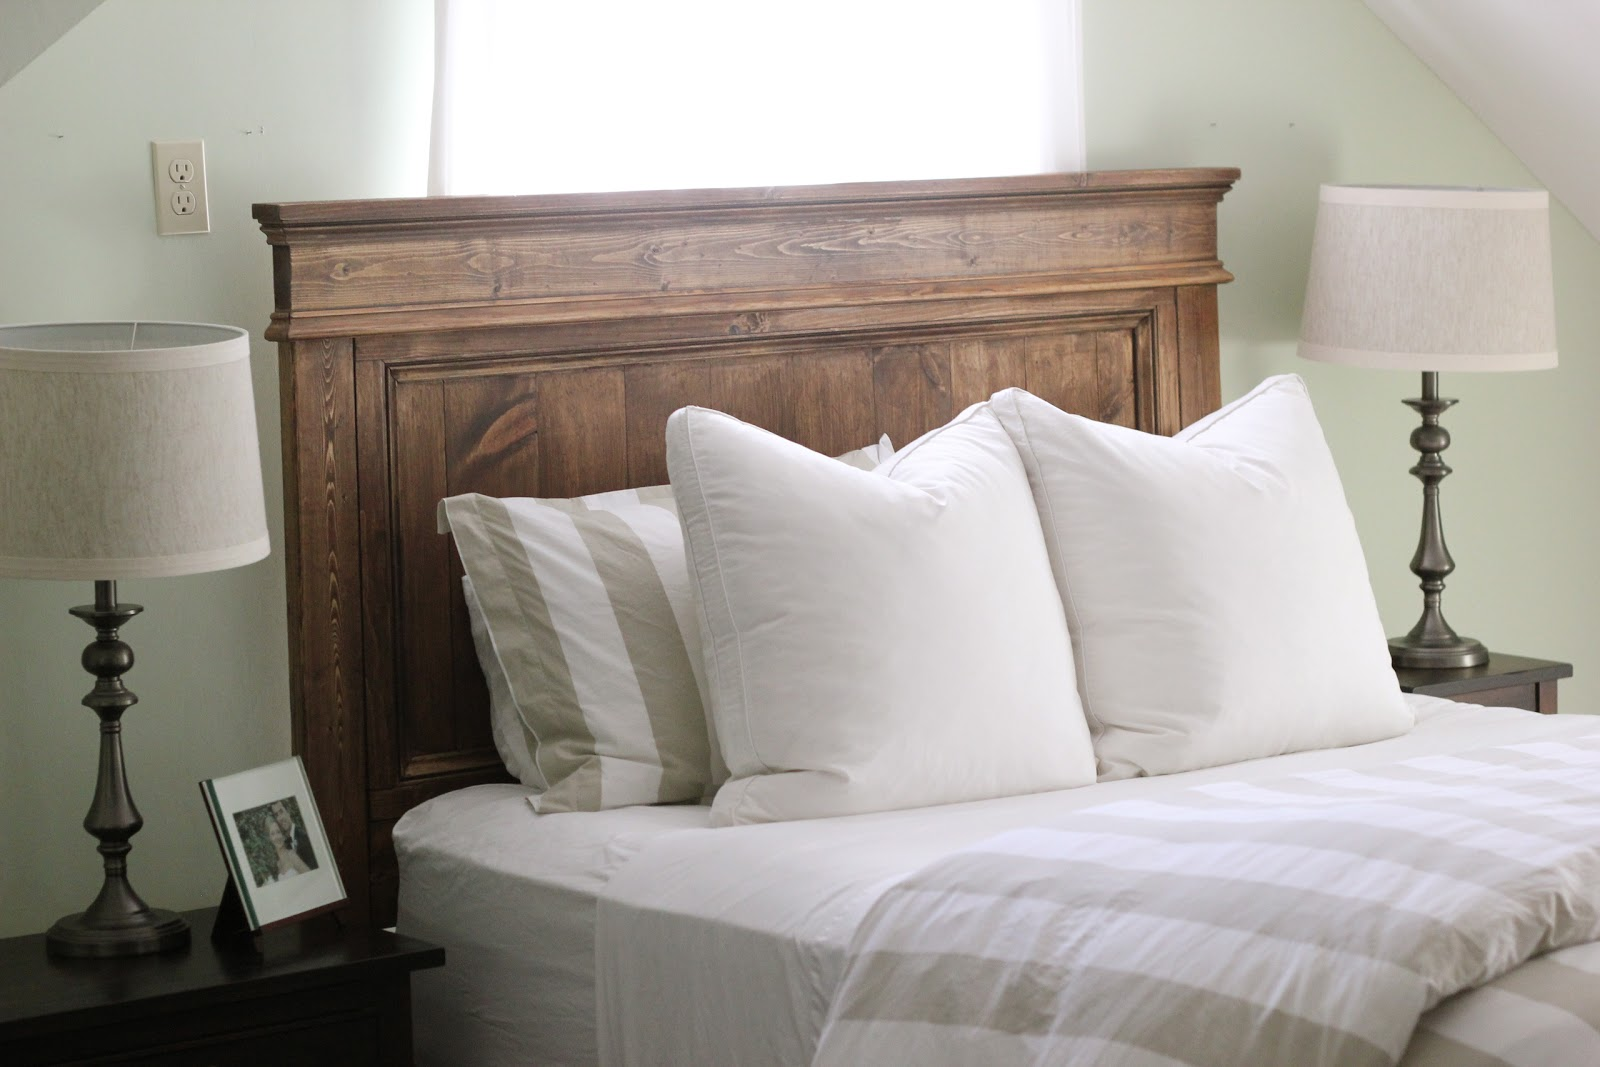 We Built A Bed! DIY Wooden Headboard